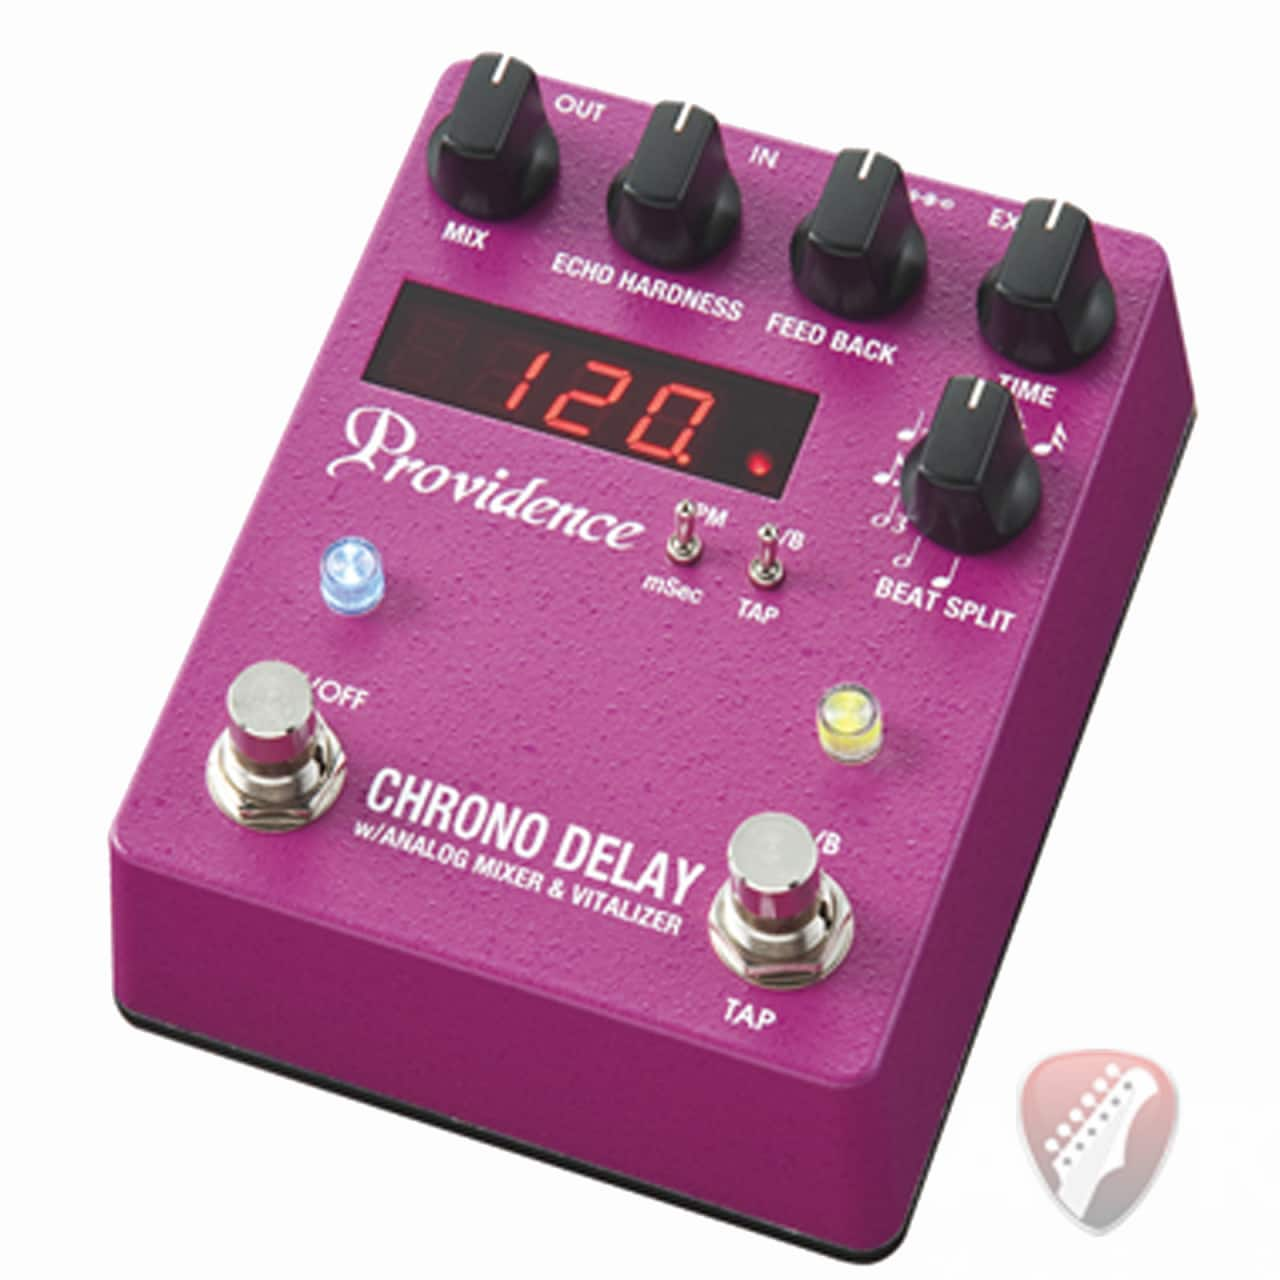 Delay Pedal With Presets : providence dly 4 chrono delay pedal a b memory presets reverb ~ Hamham.info Haus und Dekorationen